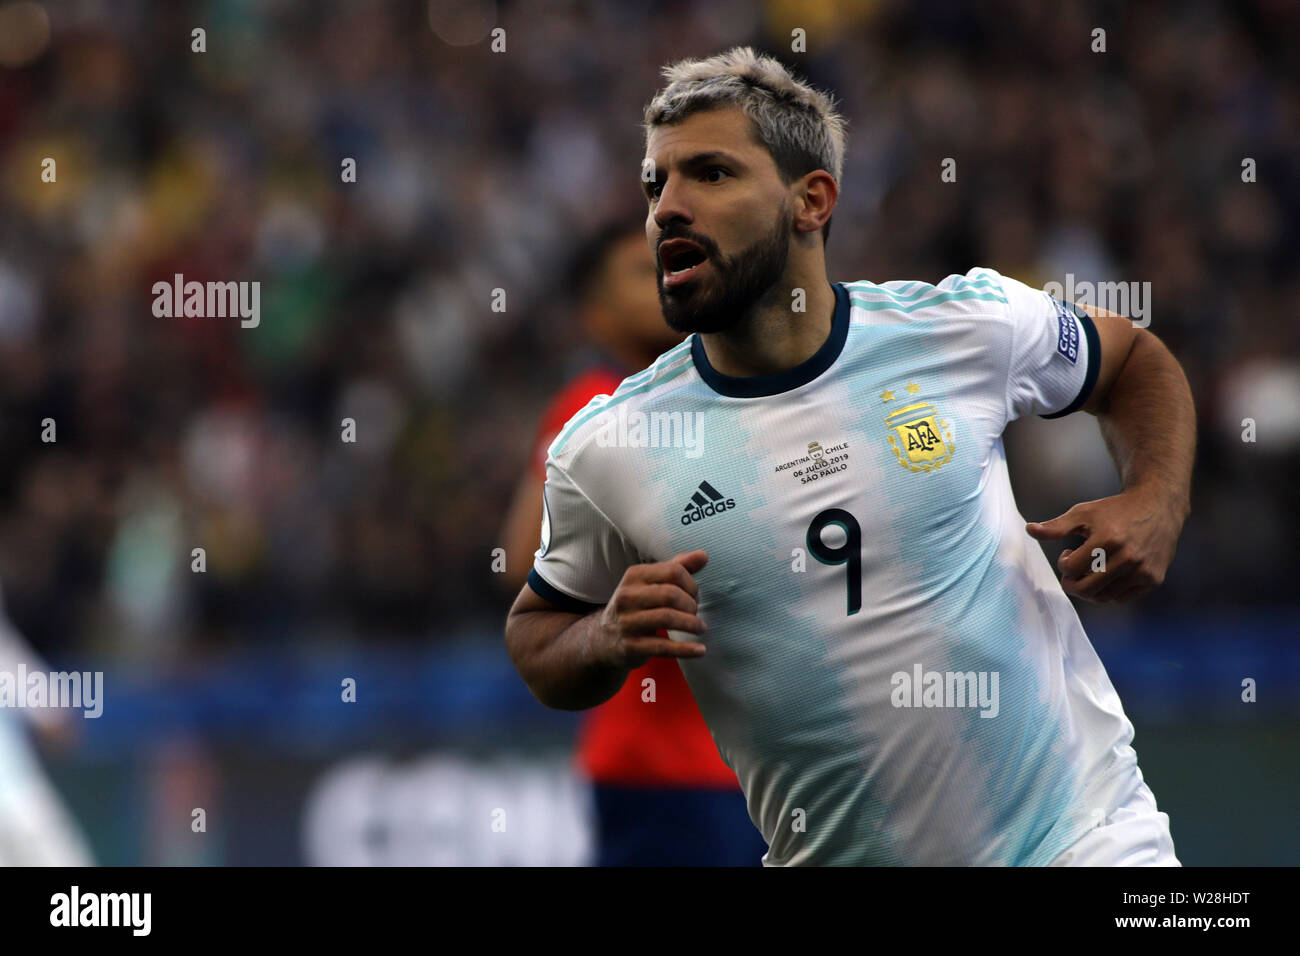 Sao Paulo, Brazil. 6th July, 2019. Argentina's Aguero celebrates scoring during the 3rd place match of Copa America 2019 between Argentina and Chile in Sao Paulo, Brazil, July 6, 2019. Credit: Rahel Patrasso/Xinhua/Alamy Live News - Stock Image